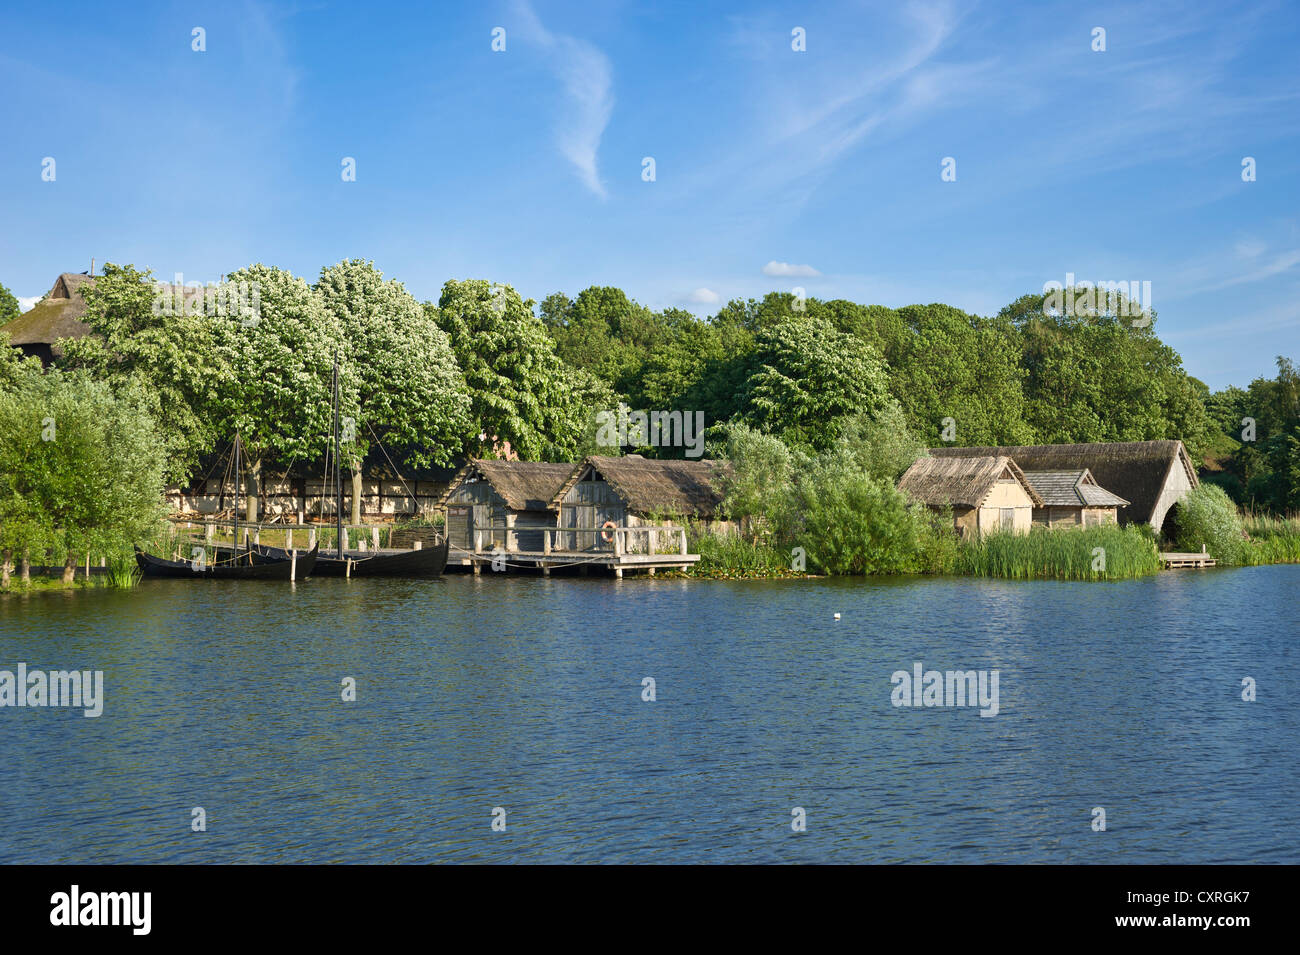 wallmuseum slavic village and lake wallsee oldenburg in holstein stock photo 50919771 alamy. Black Bedroom Furniture Sets. Home Design Ideas